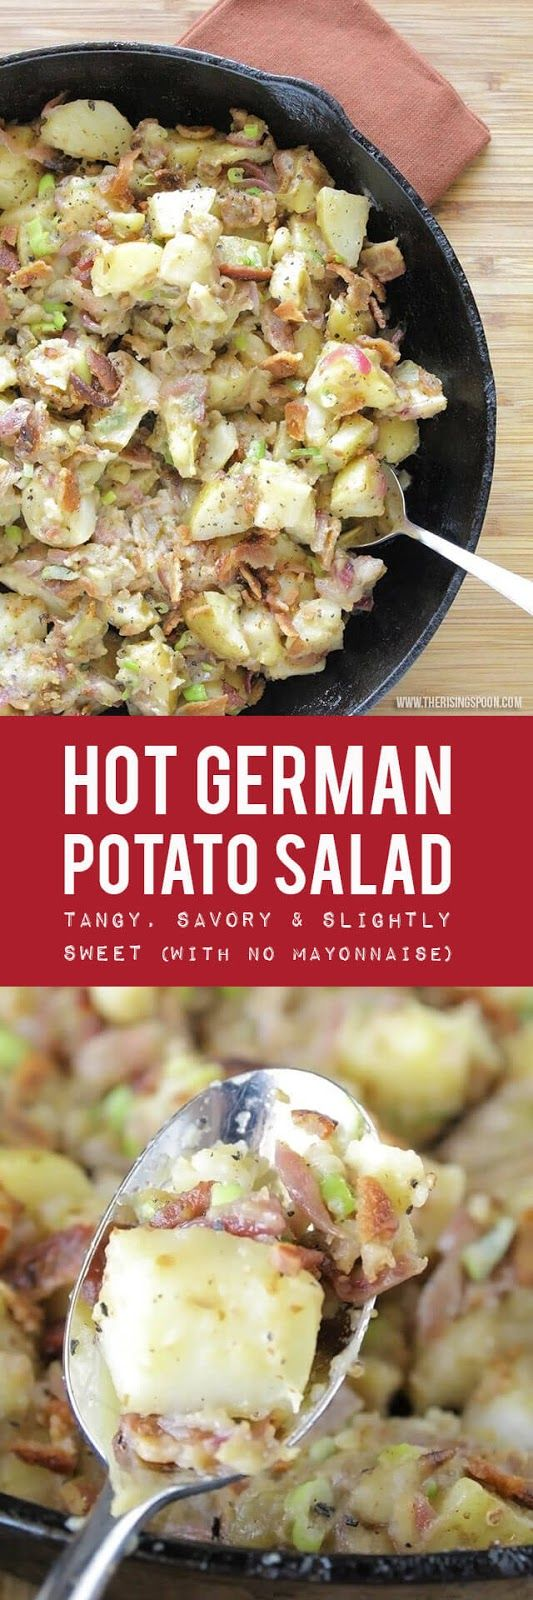 An Easy Hot German Potato Salad Recipe that's tangy, savory, and slightly sweet. A great alternative to normal mayo potato salad.   Gluten-free   Grain-Free   Dairy-Free   Real Food Recipes   Dinner